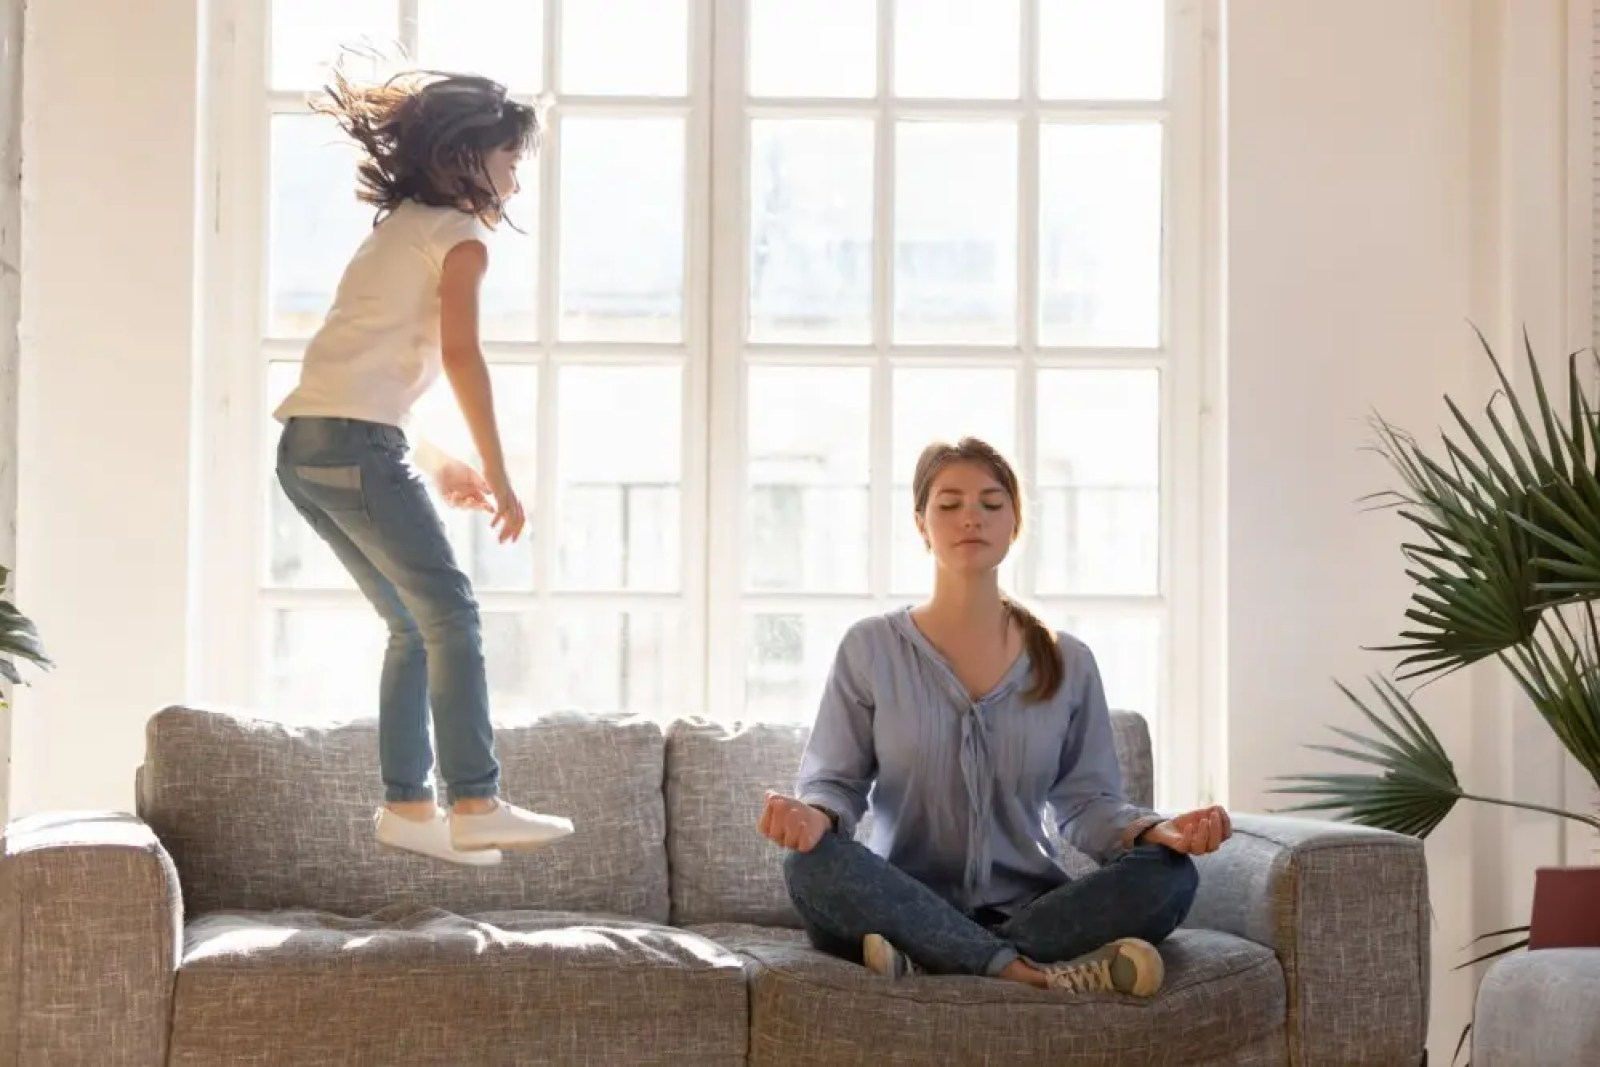 A woman meditating while a little girl jumps on the sofa next to her.